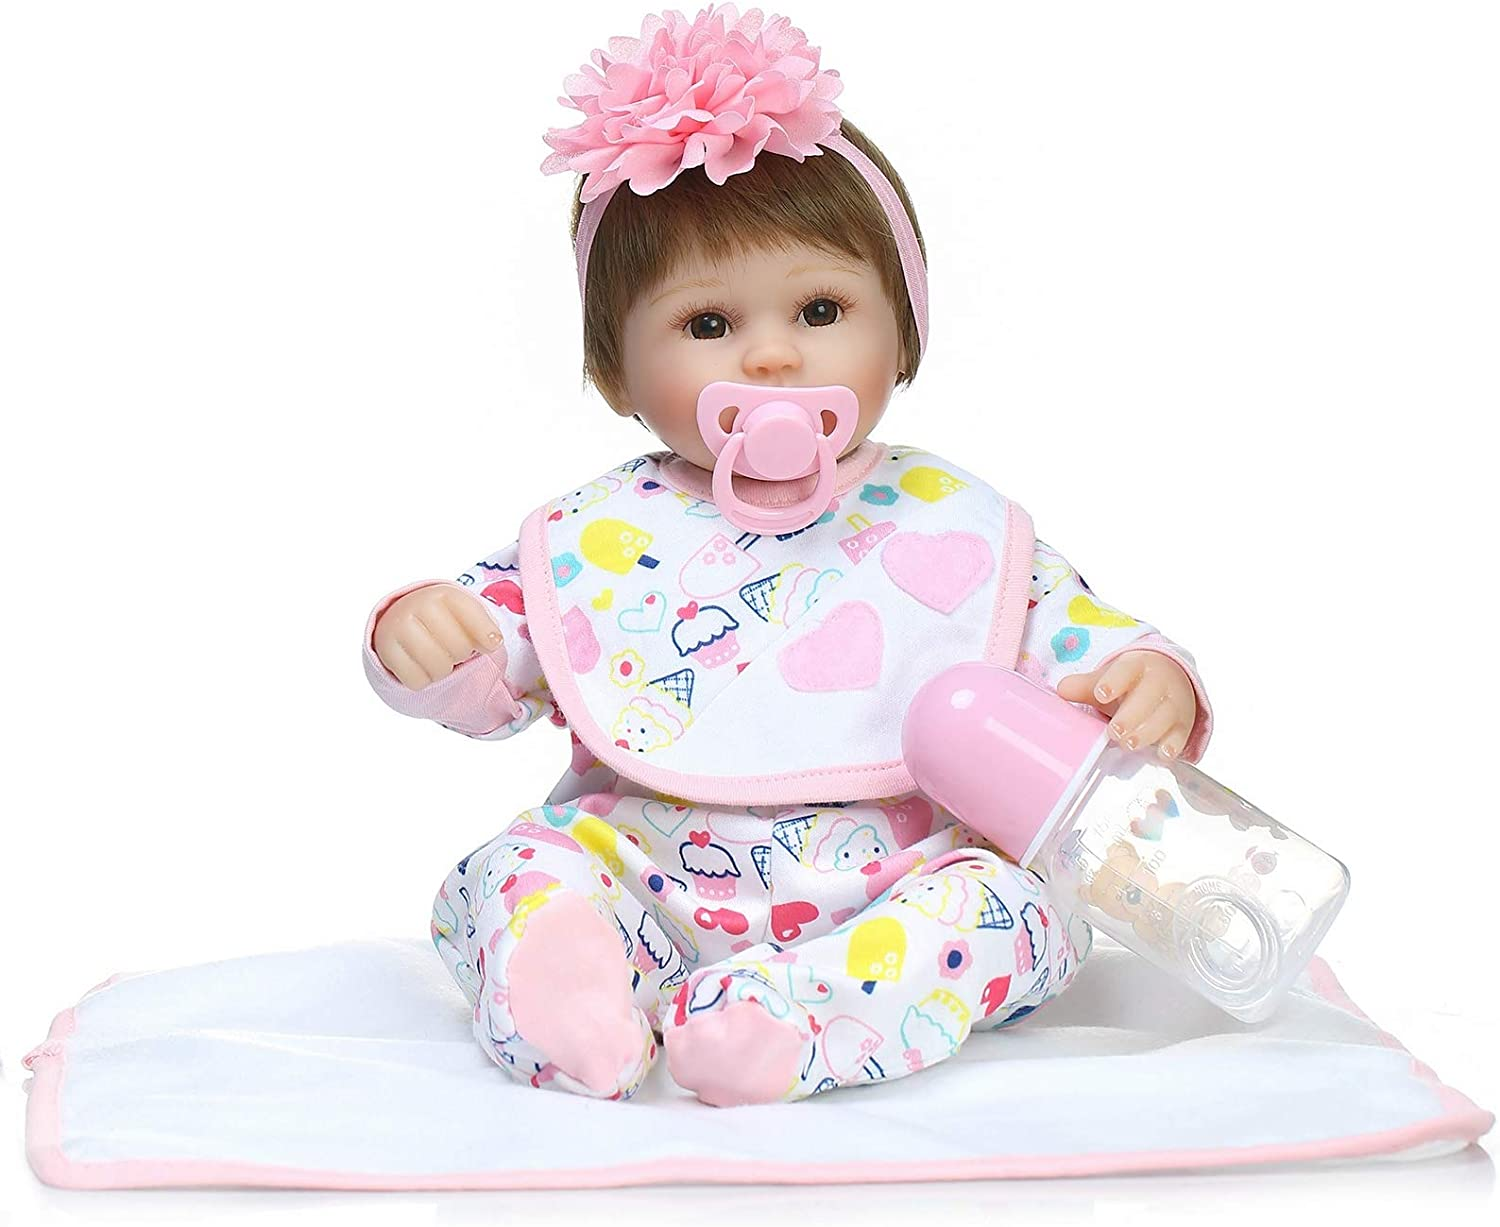 16 inch ice cream clothes doll Reborn Baby Handmade Realistic Newborn Baby Kids Gift for Ages 3+Play house game